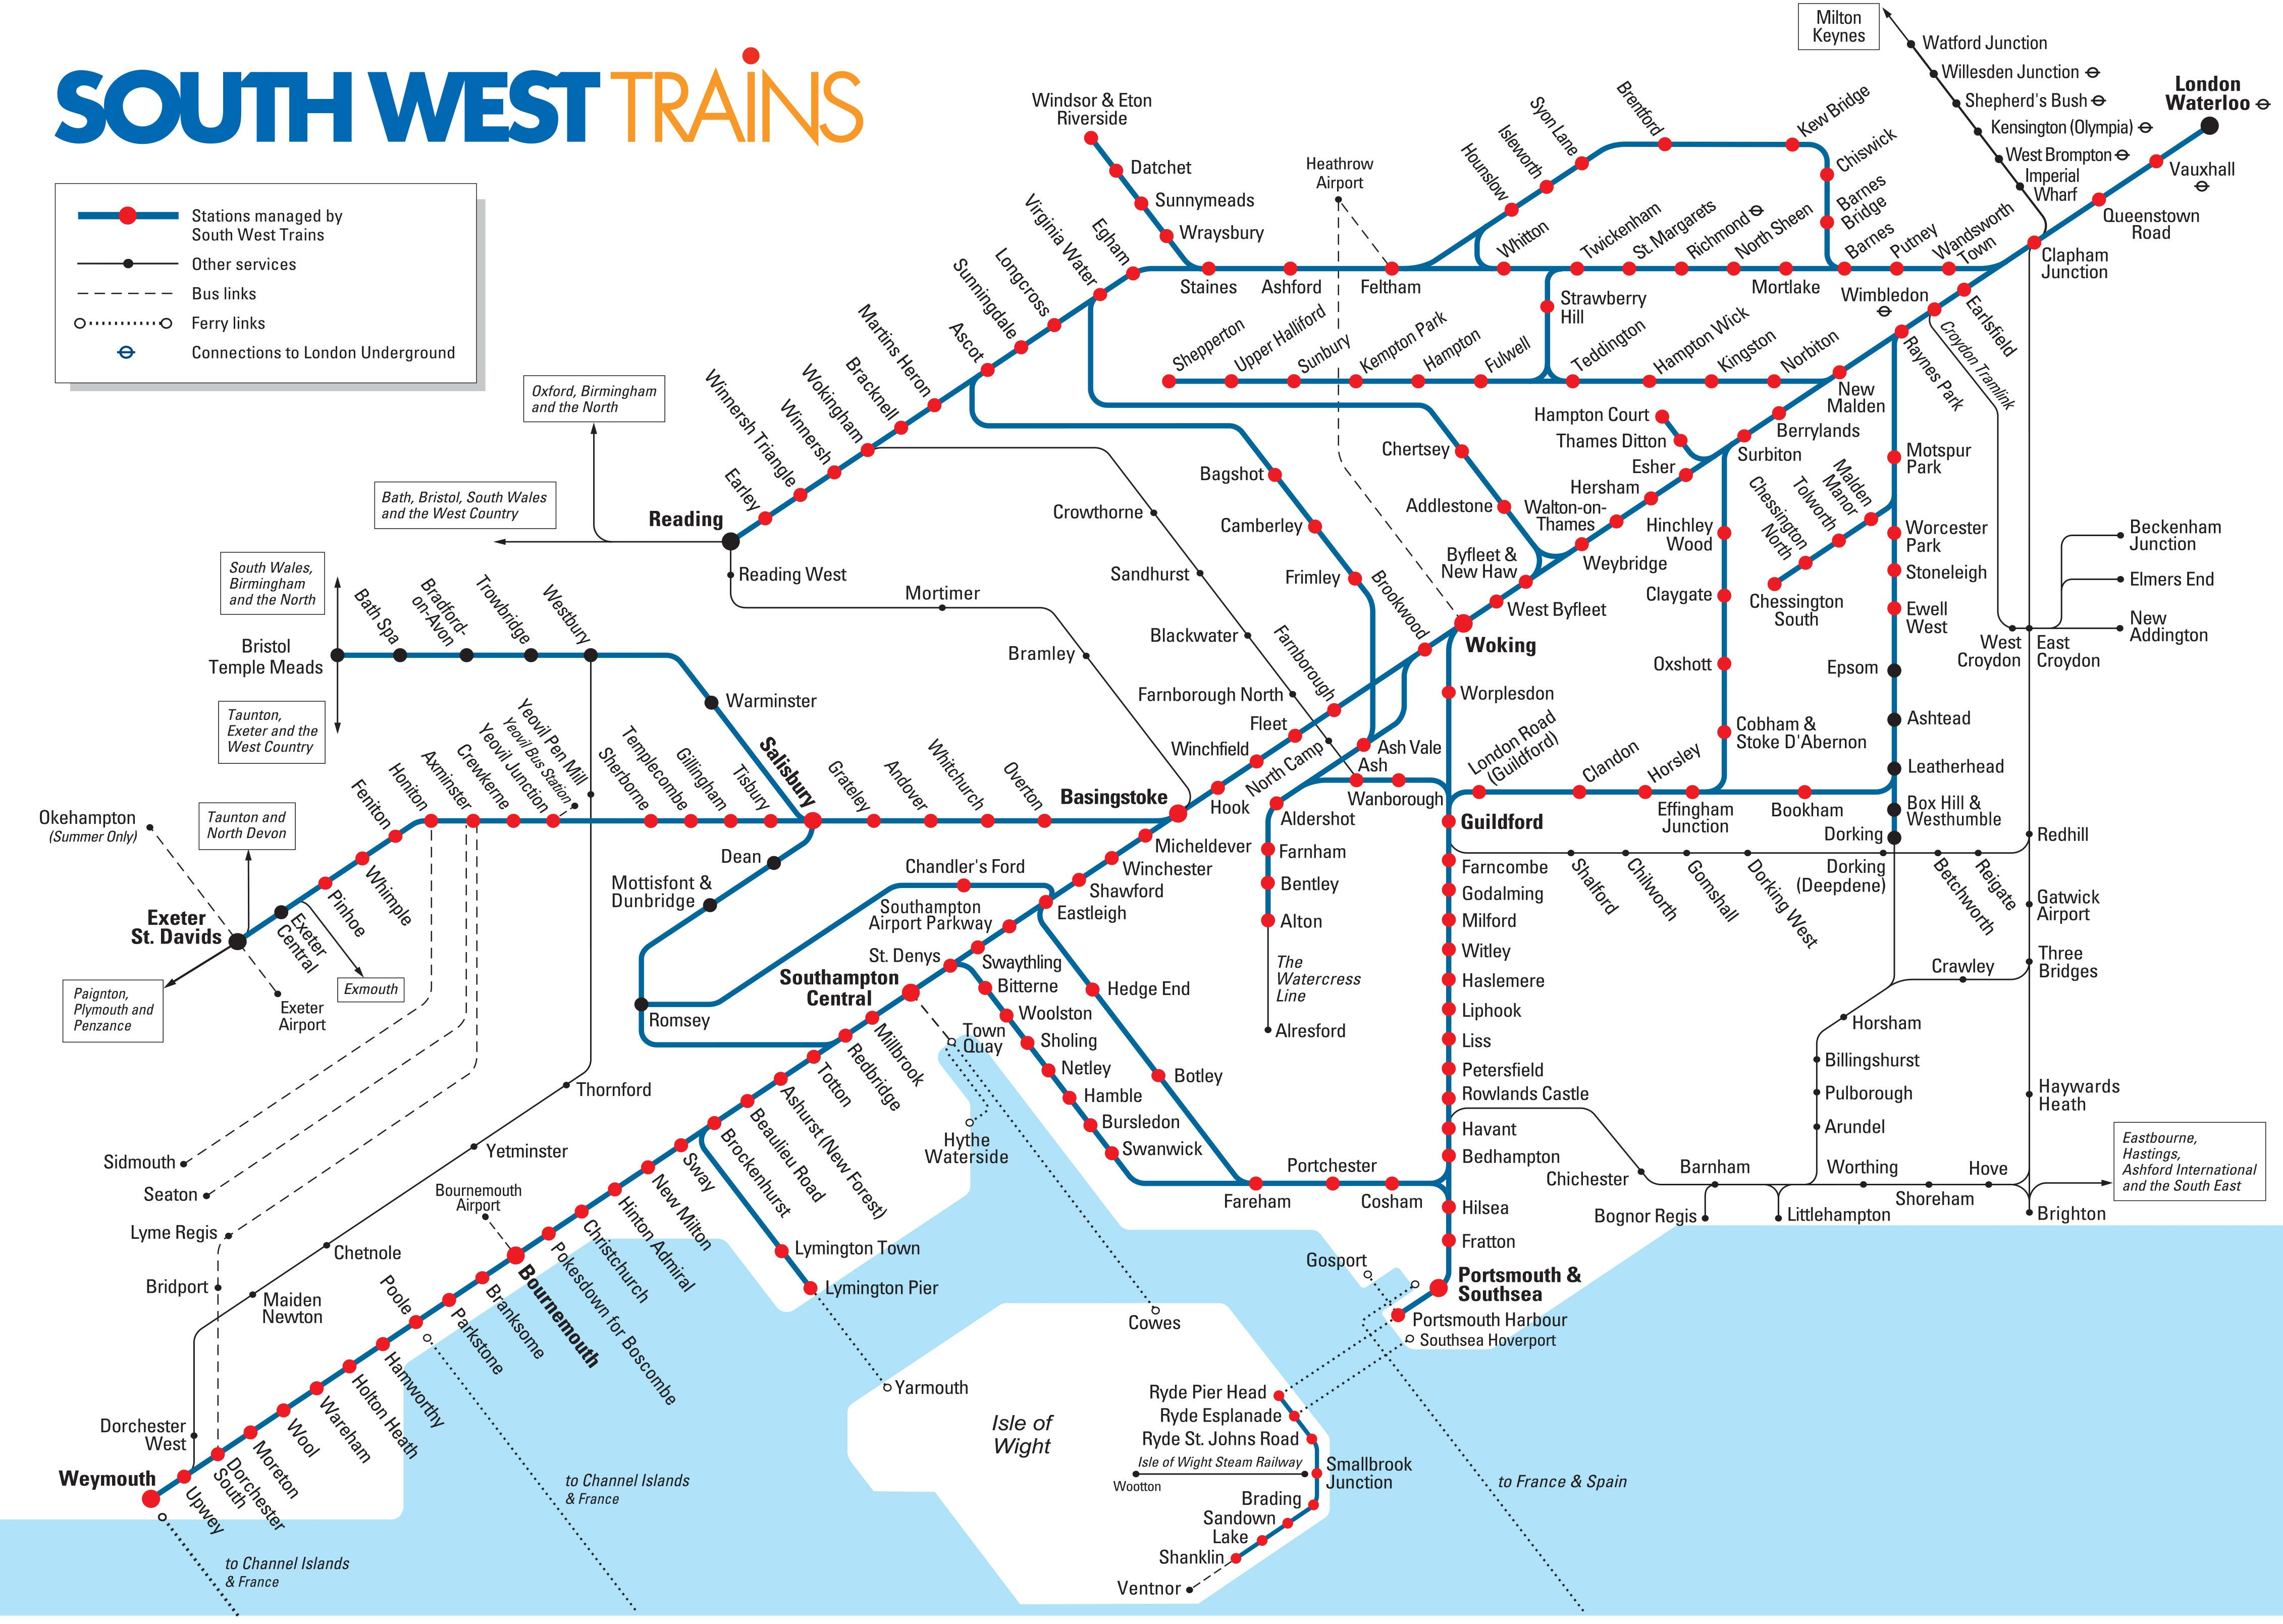 Pin canadian national railroad map on pinterest - Printable Pdf Maps Of London Commuter Rail Urban Rail Suburban Train With Informations About The Overground Dlr And Other Rail And Train Networks Map